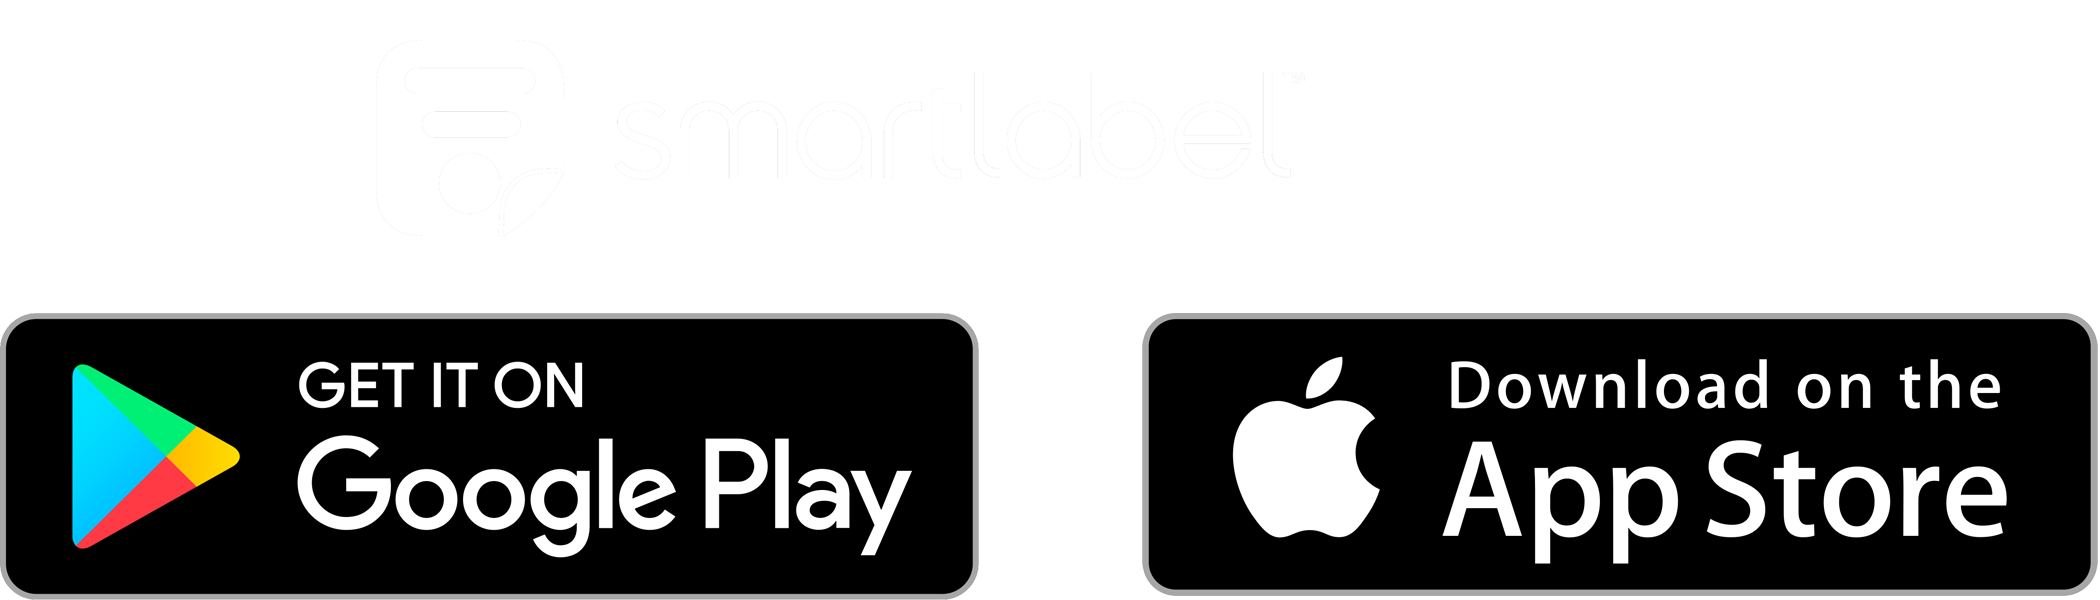 Google play store png. Button image stock